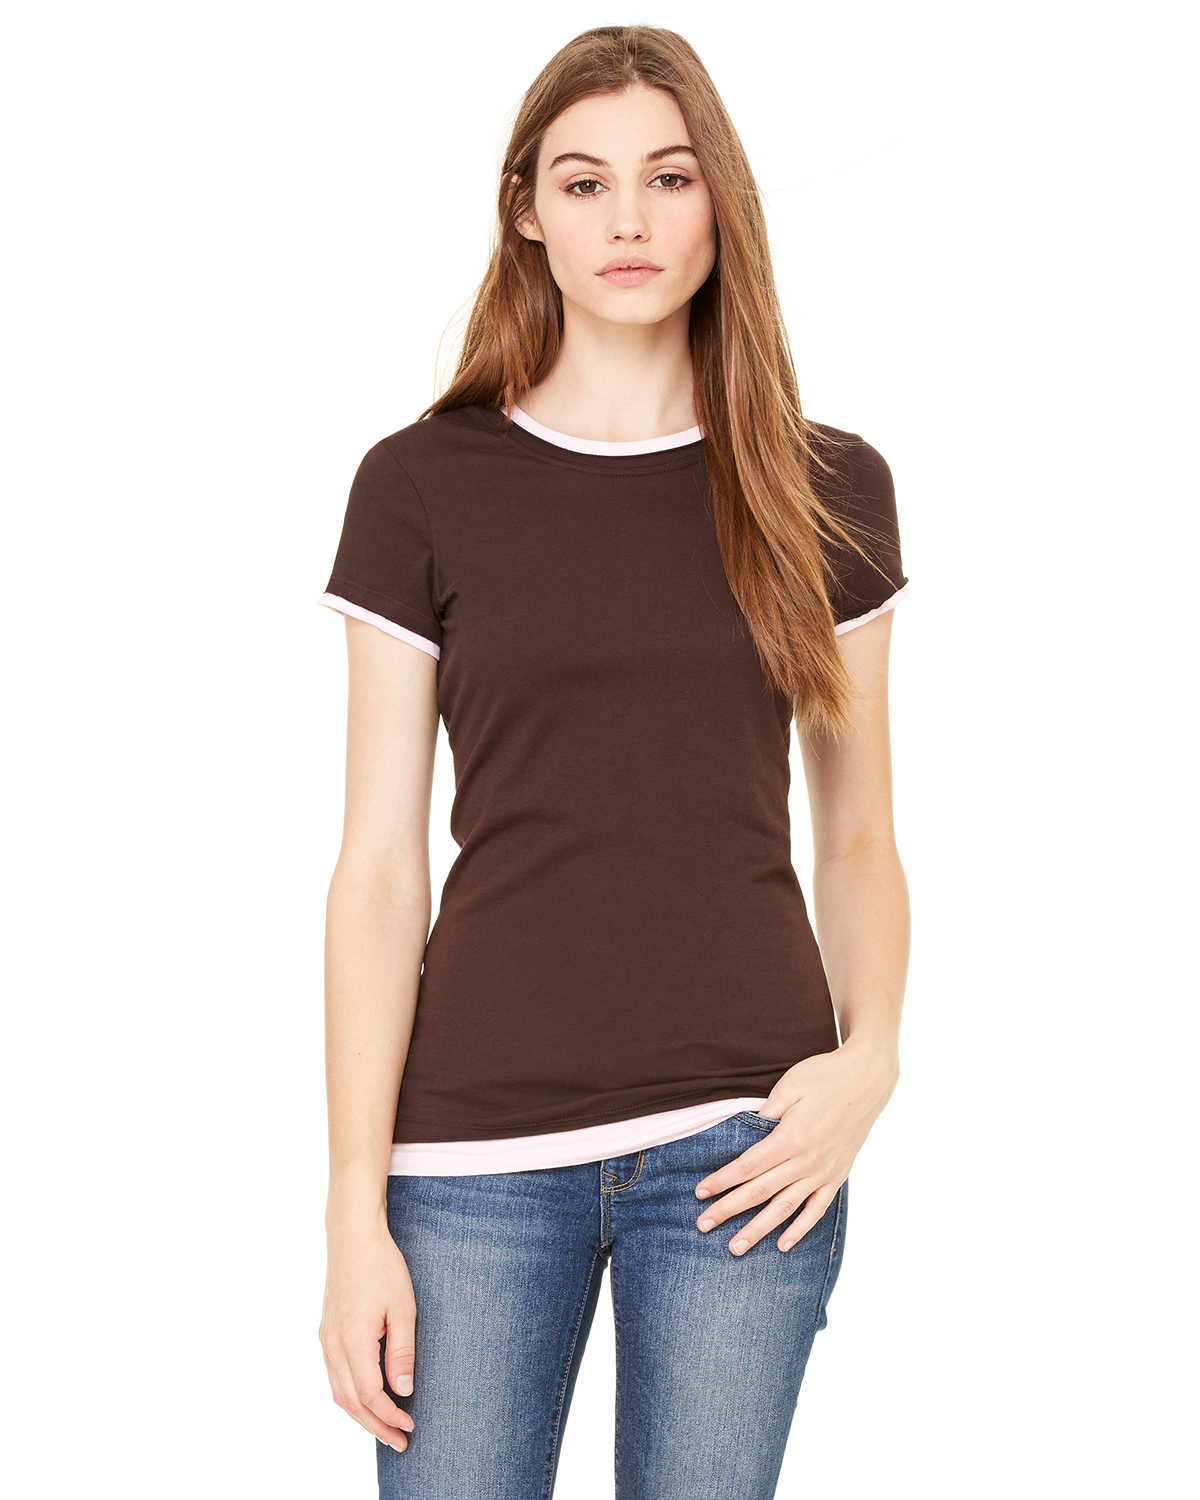 Bella B8102  Women's Sheer Jersey Longer Length 2-in-1 T-Shirt